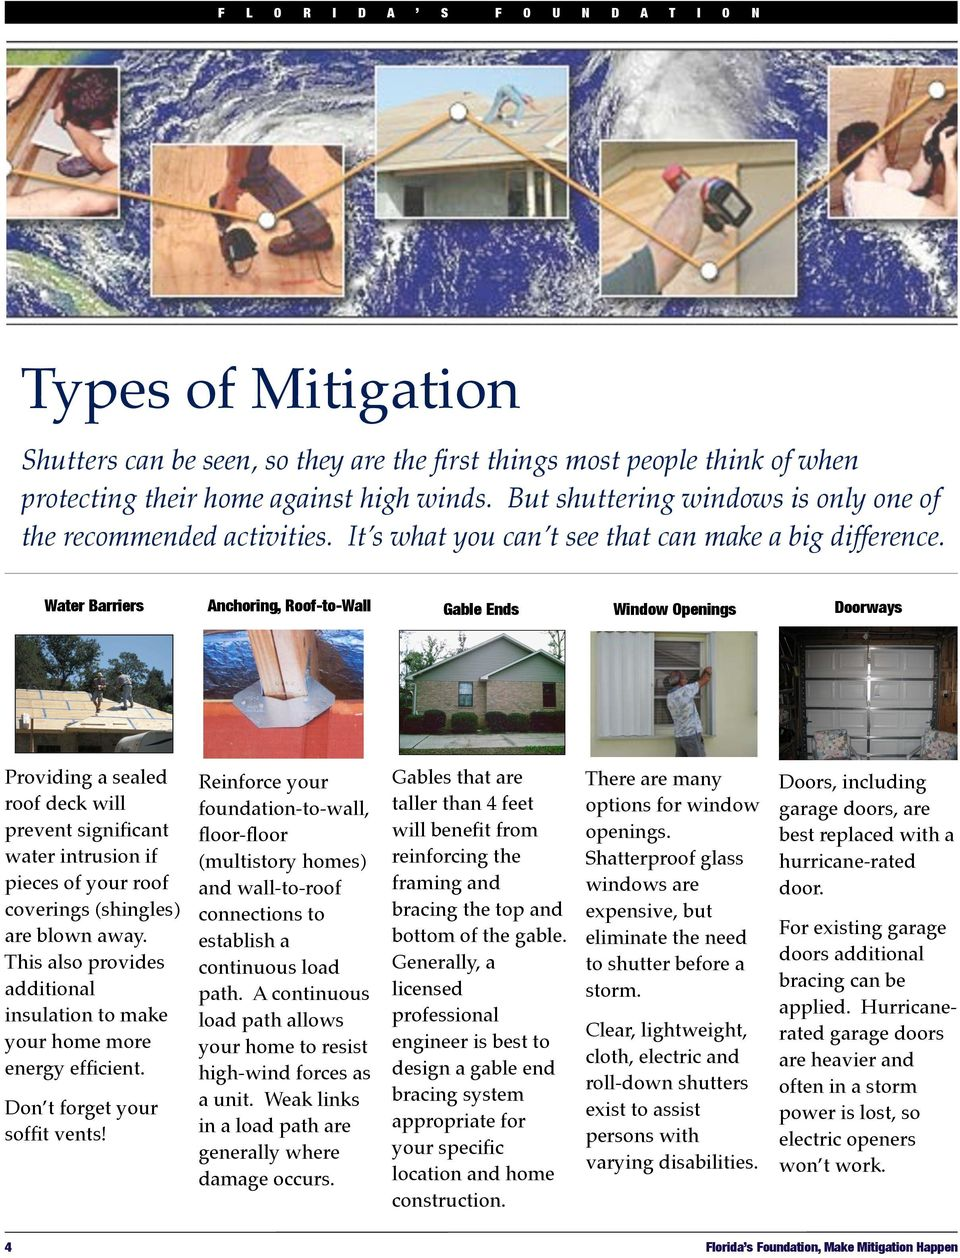 Water Barriers Anchoring, Roof-to-Wall Gable Ends Window Openings Doorways Providing a sealed roof deck will prevent significant water intrusion if pieces of your roof coverings (shingles) are blown